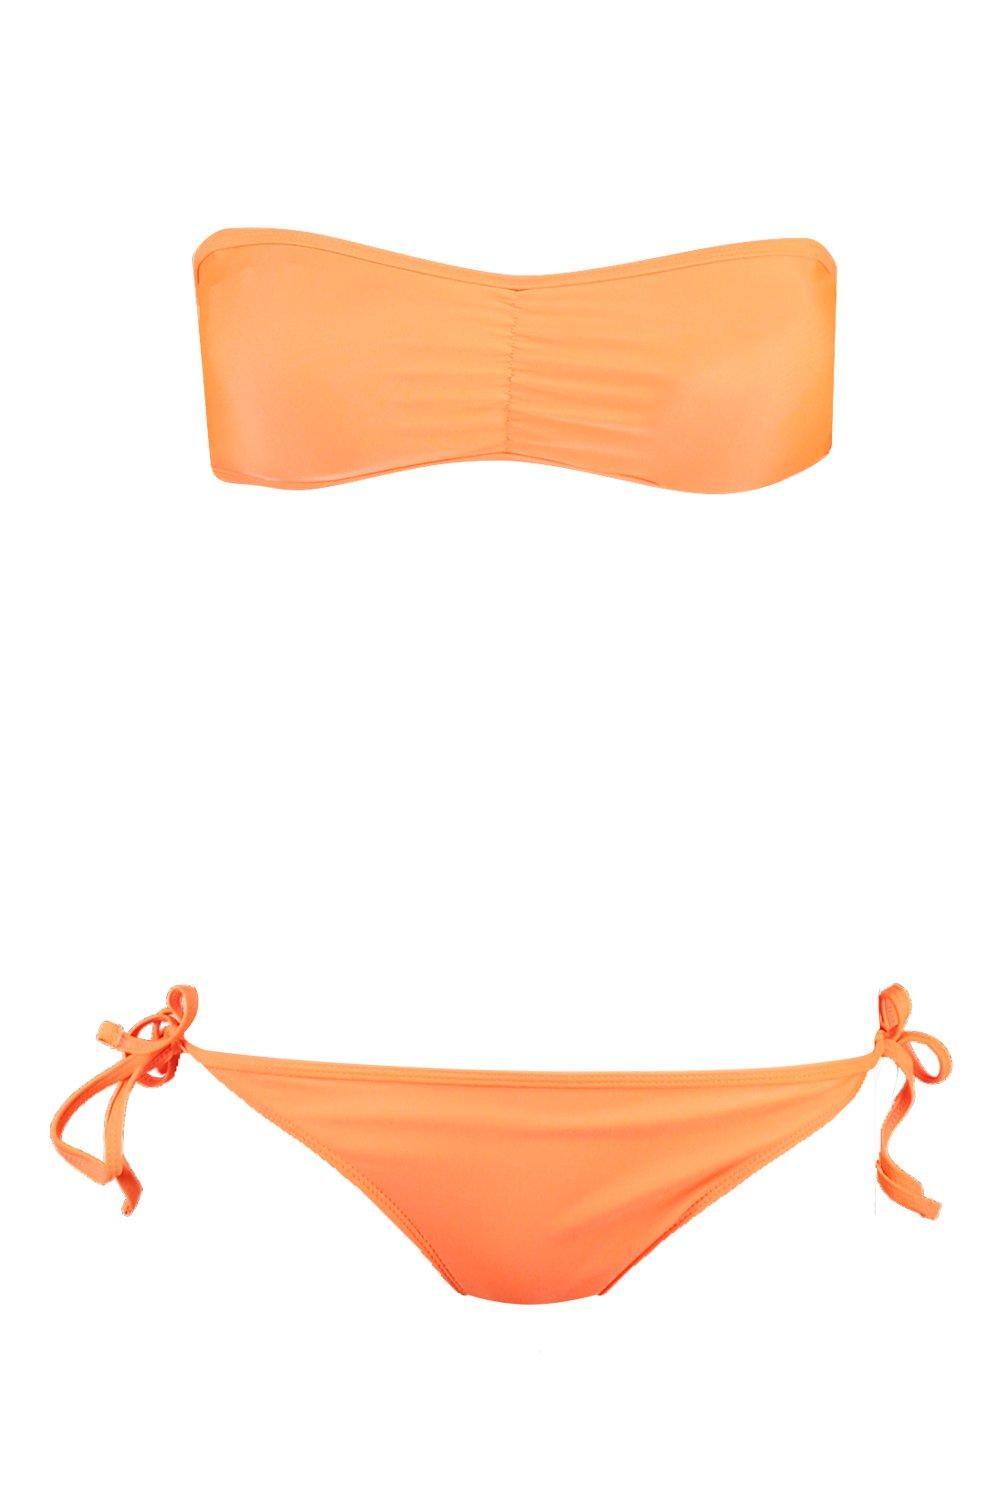 Brief Tie Mix Match amp; Bikini orange Side wS6wTqX